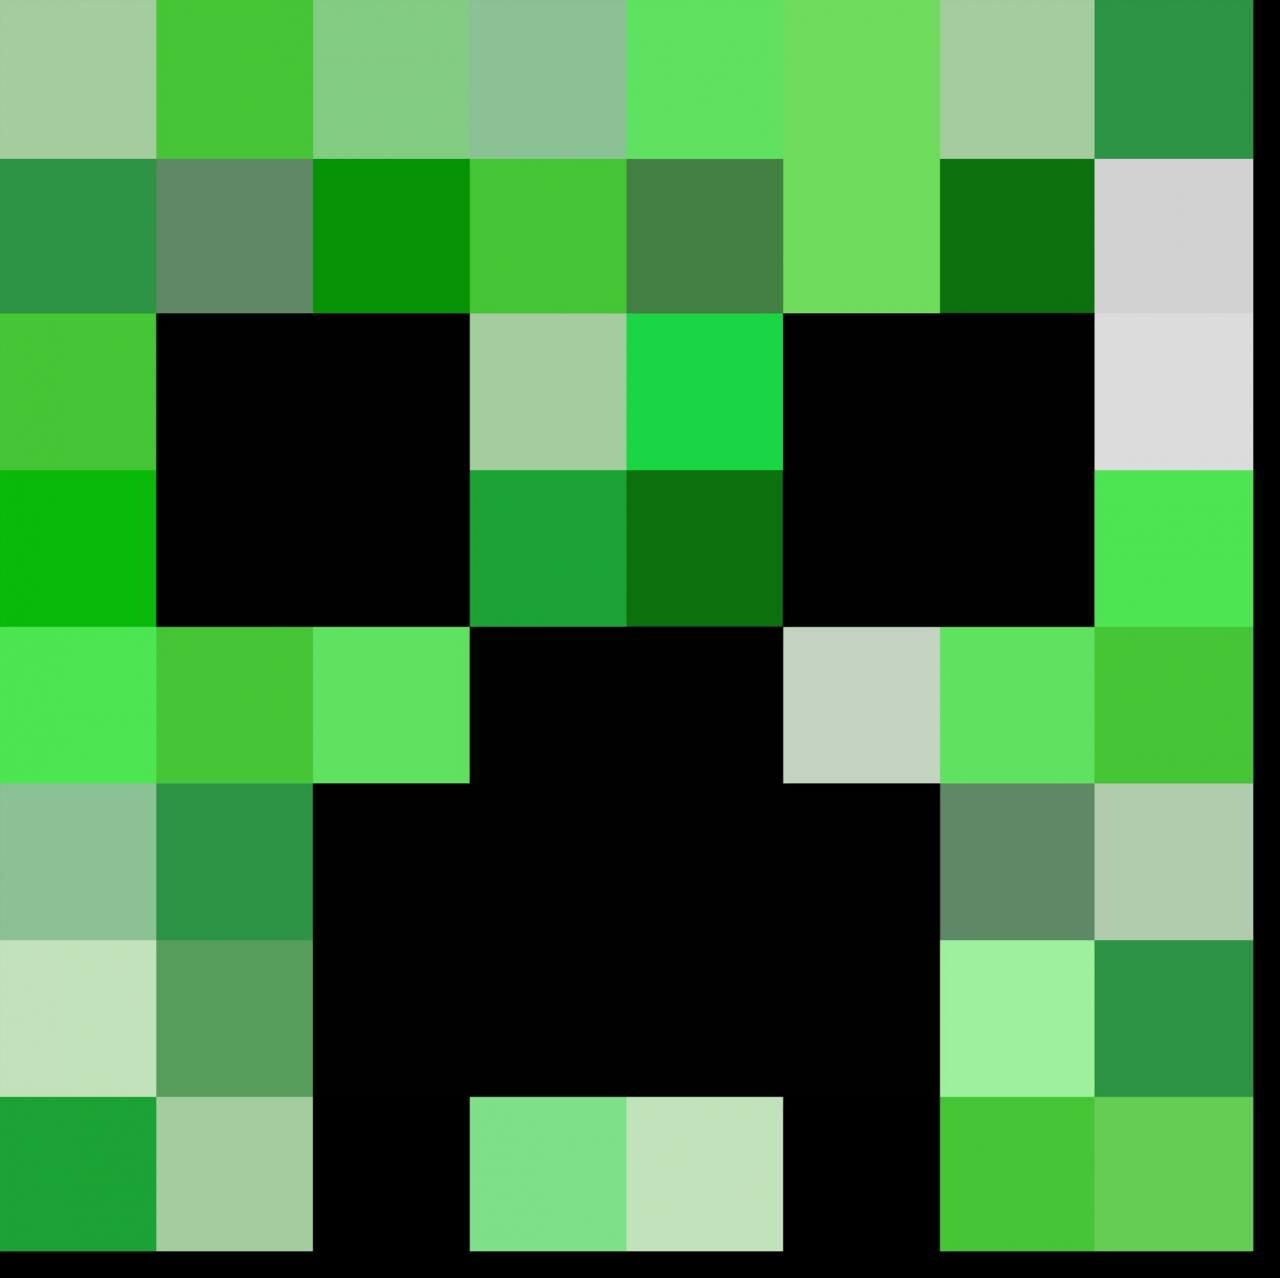 History of the creeper and how it was made informal minecraft blog history of the creeper and how it was made informal minecraft blog voltagebd Image collections